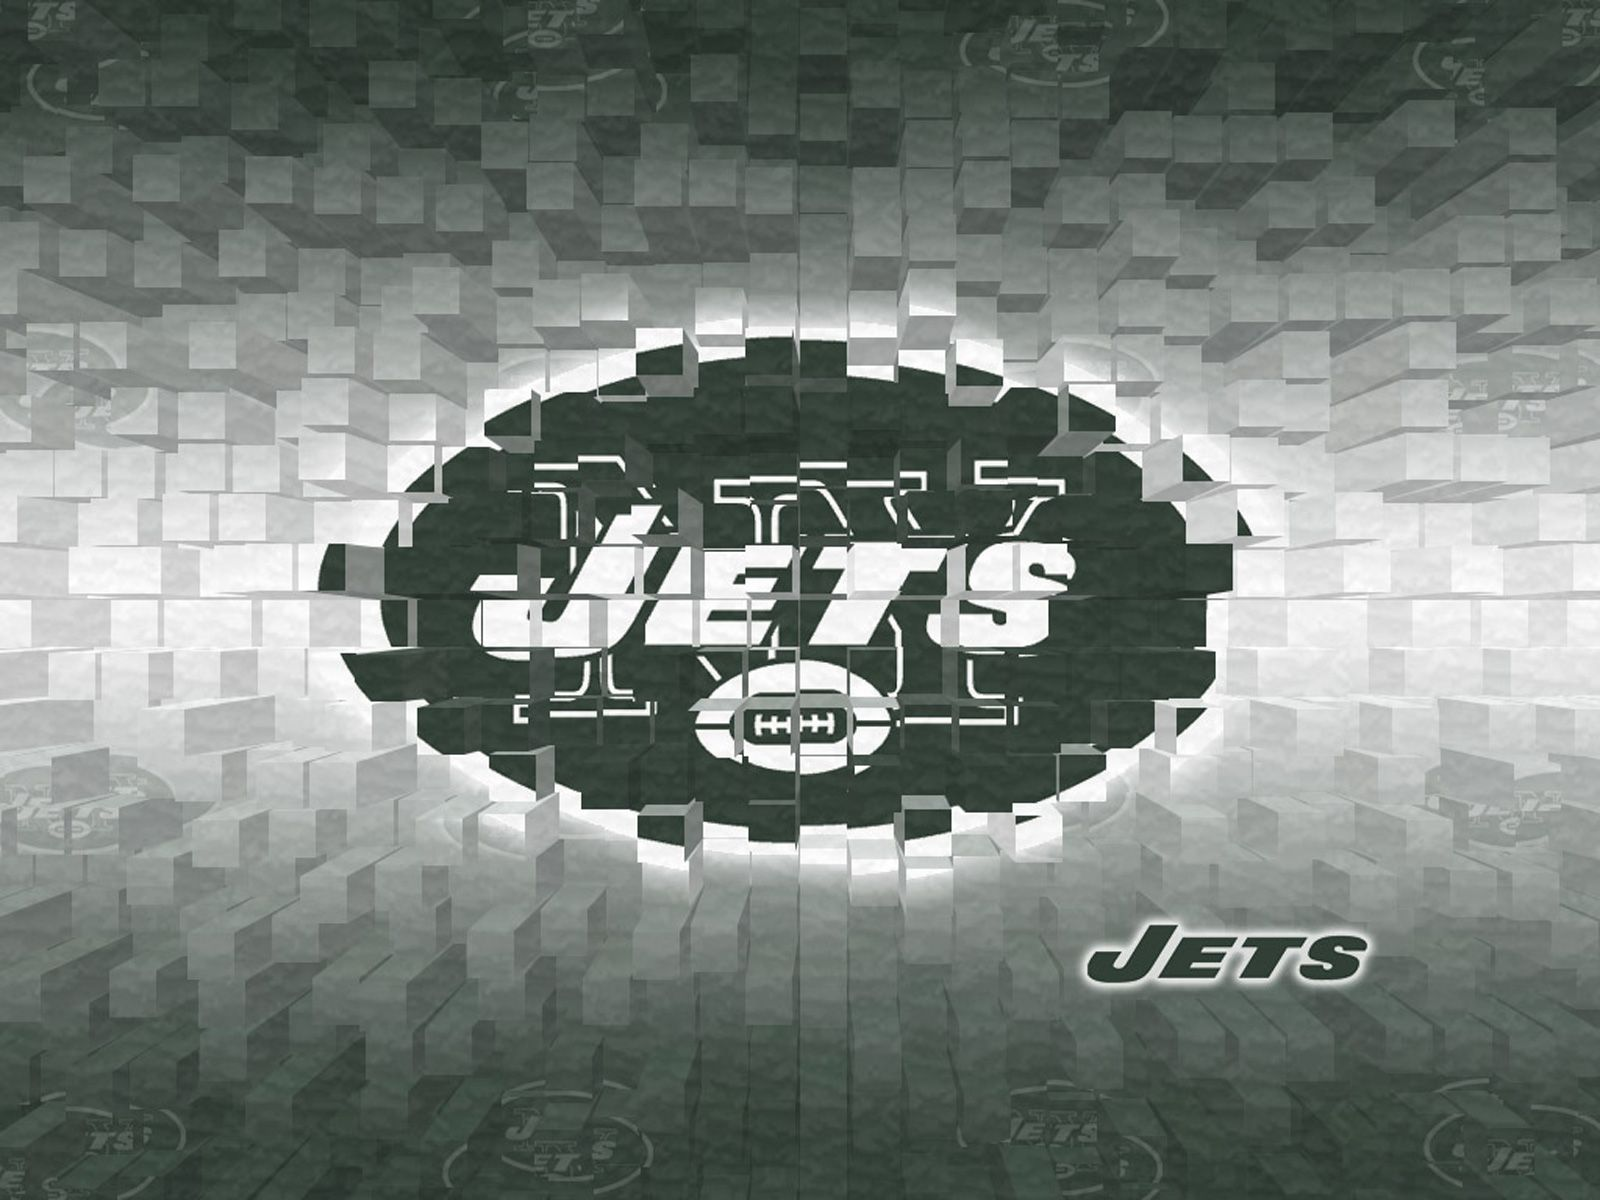 New York Jets Wallpapers Top Free New York Jets Backgrounds